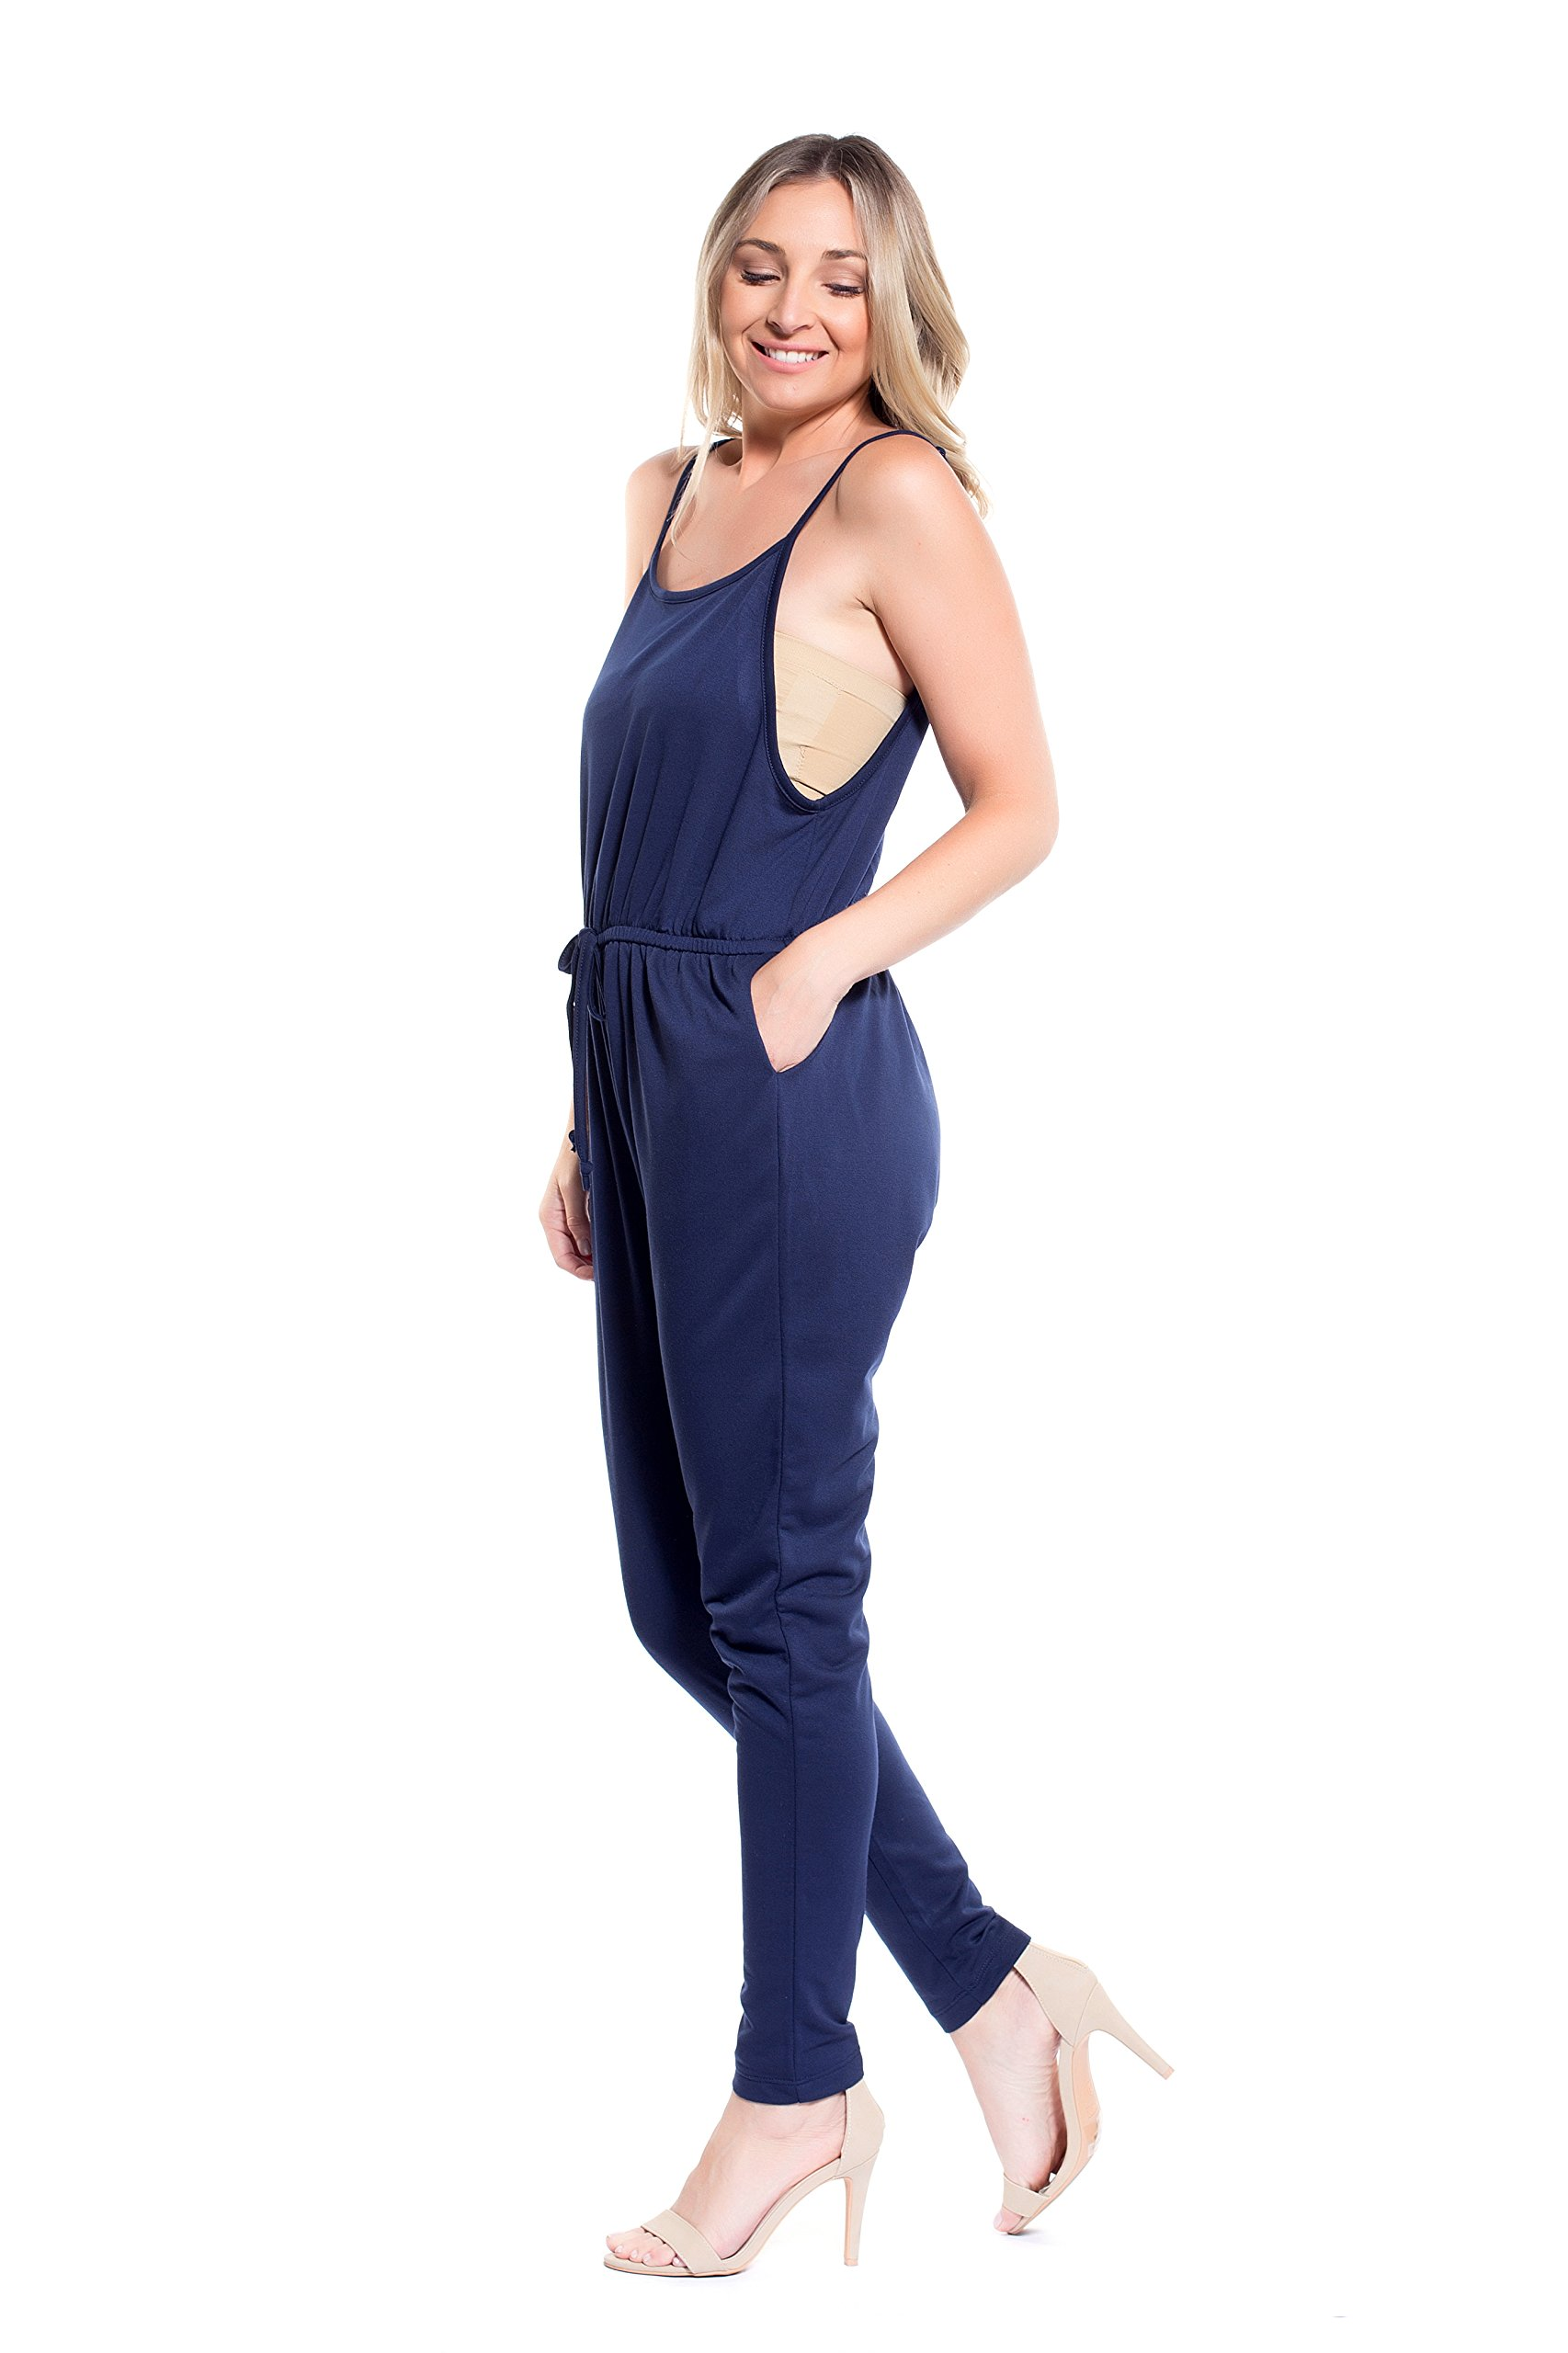 Instar Mode Women's Classic Casual Overalls Jumpsuits in Various Styles (RL22115 Navy, Medium)